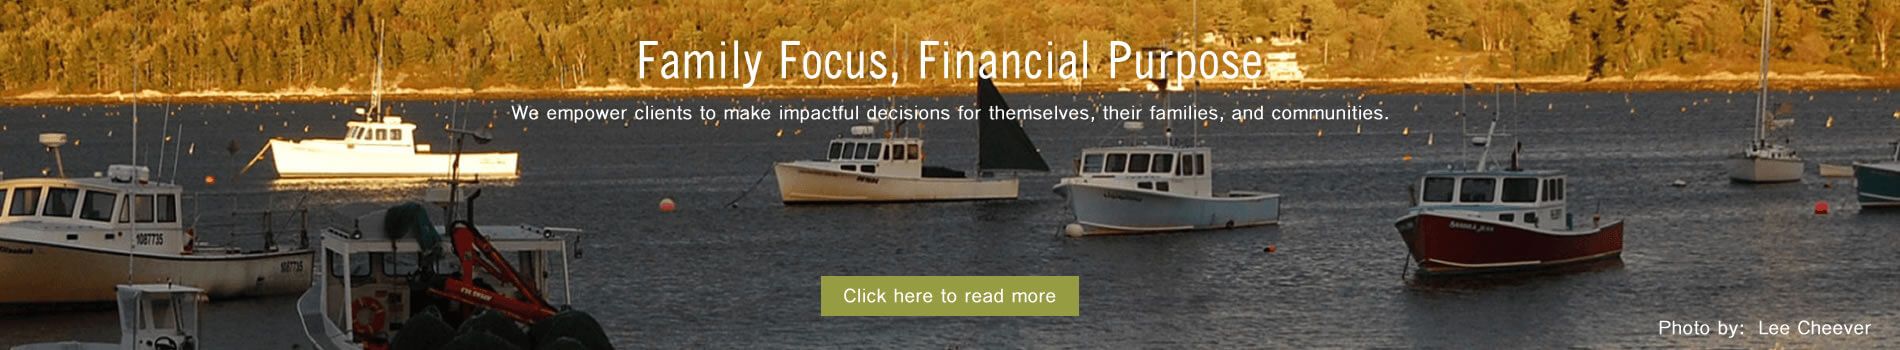 Banner image stating Cribstone Capital has family focus with financial purpose.